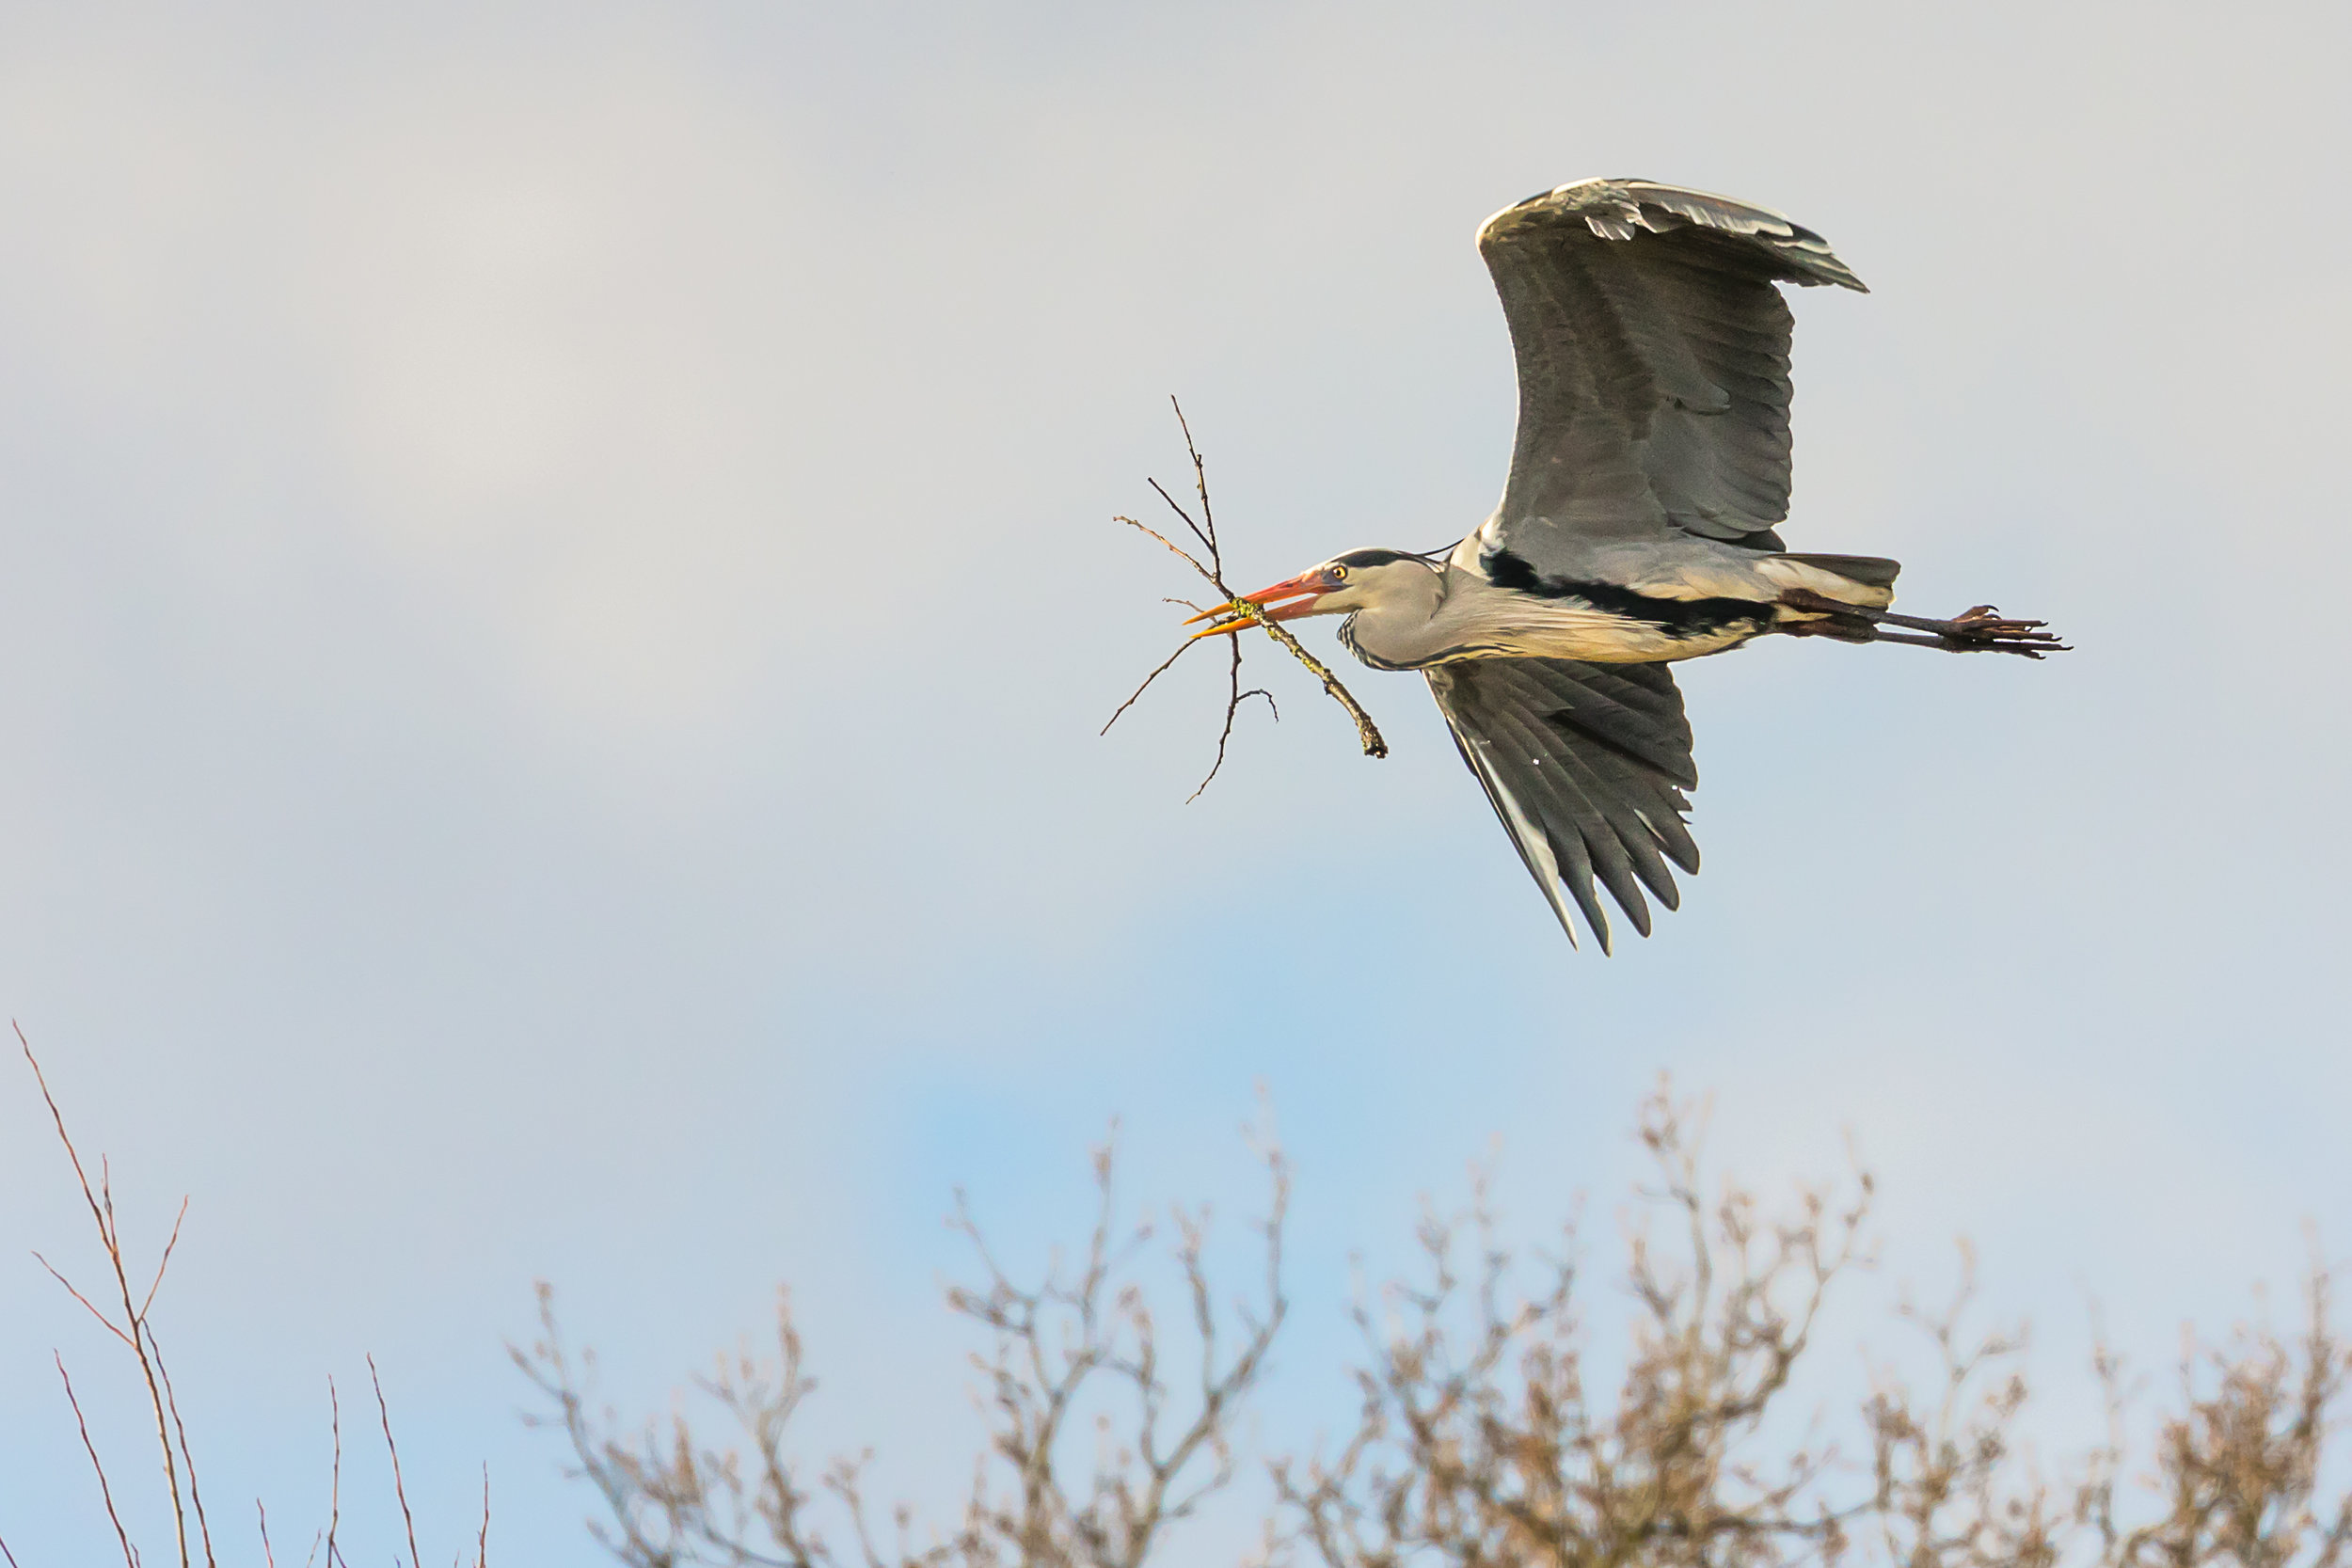 On its way back to the Heronry